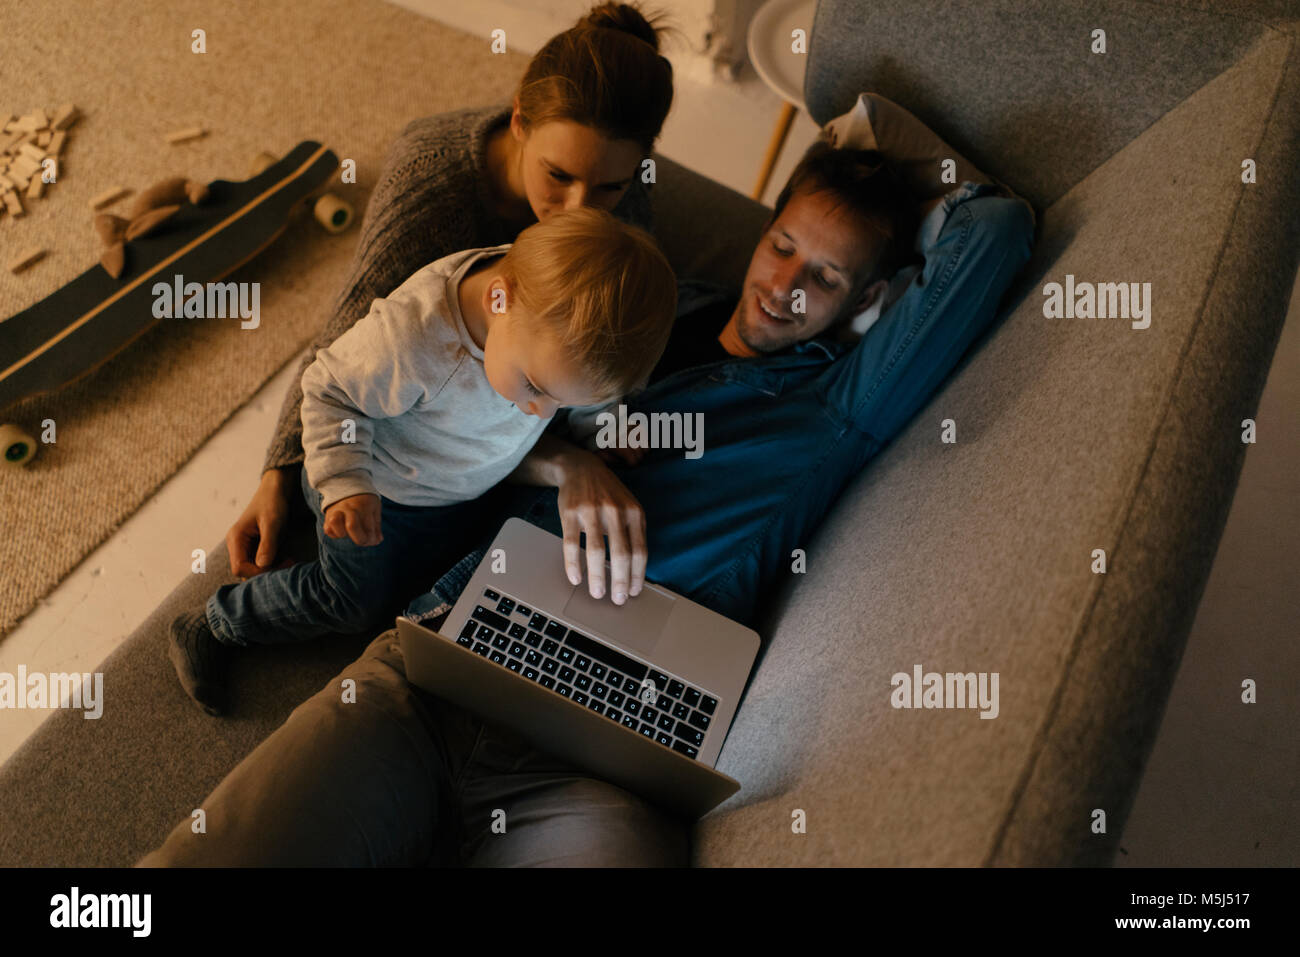 Family using laptop on the couch in the dark - Stock Image